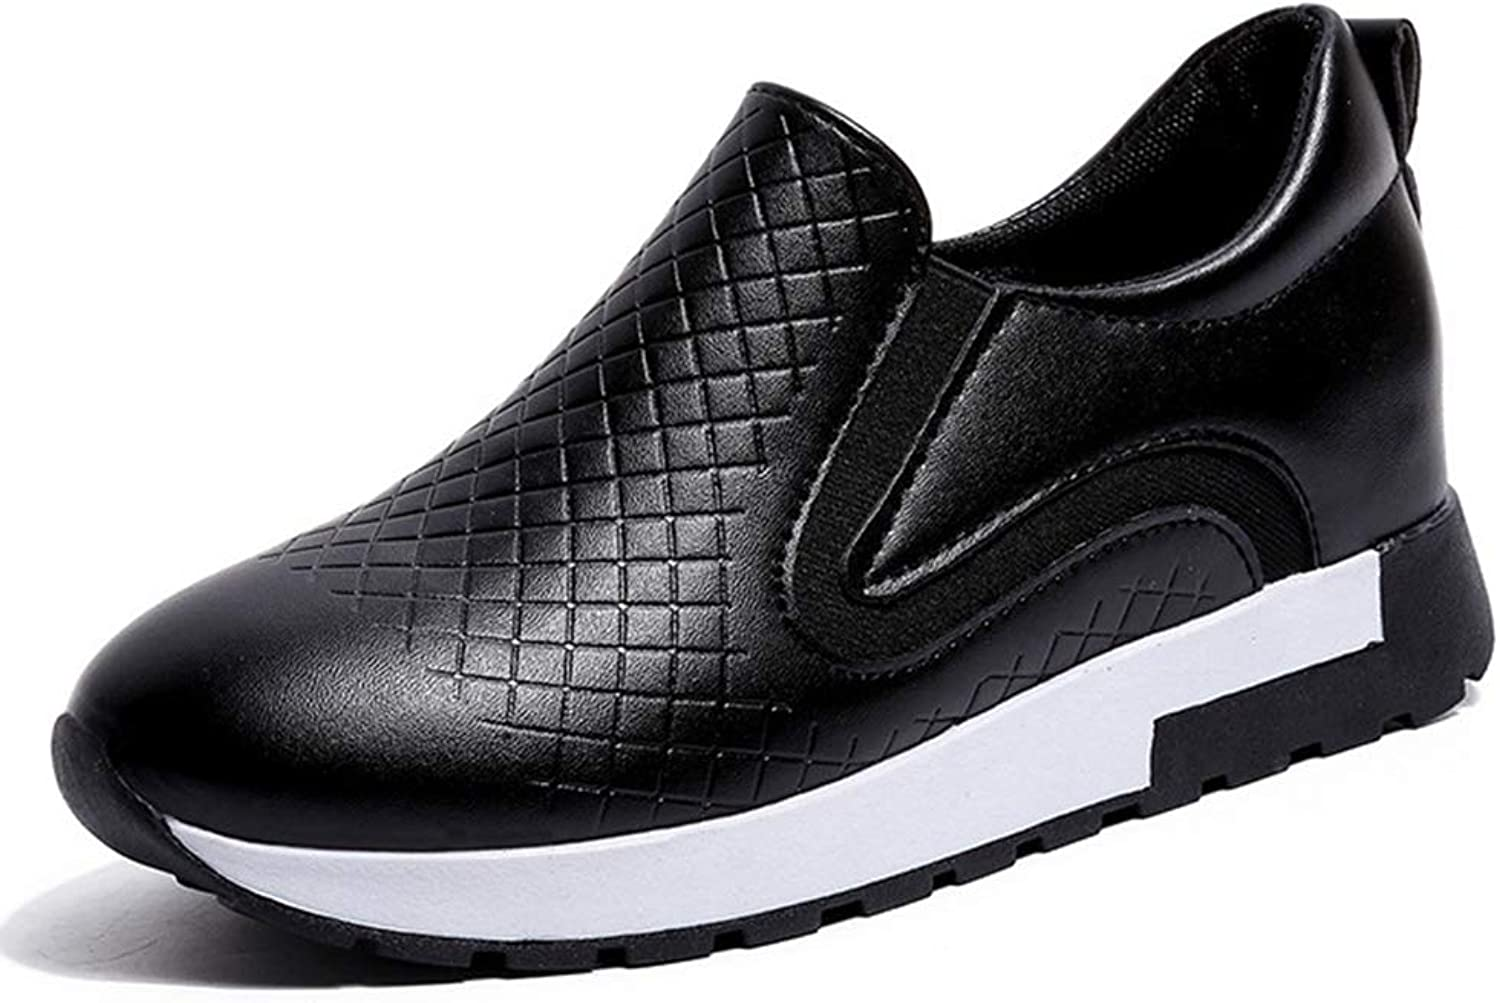 CYBLING Women's Fashion Sneakers Casual Slip On Loafers Quilted Hidden Heel Wedge Walking shoes